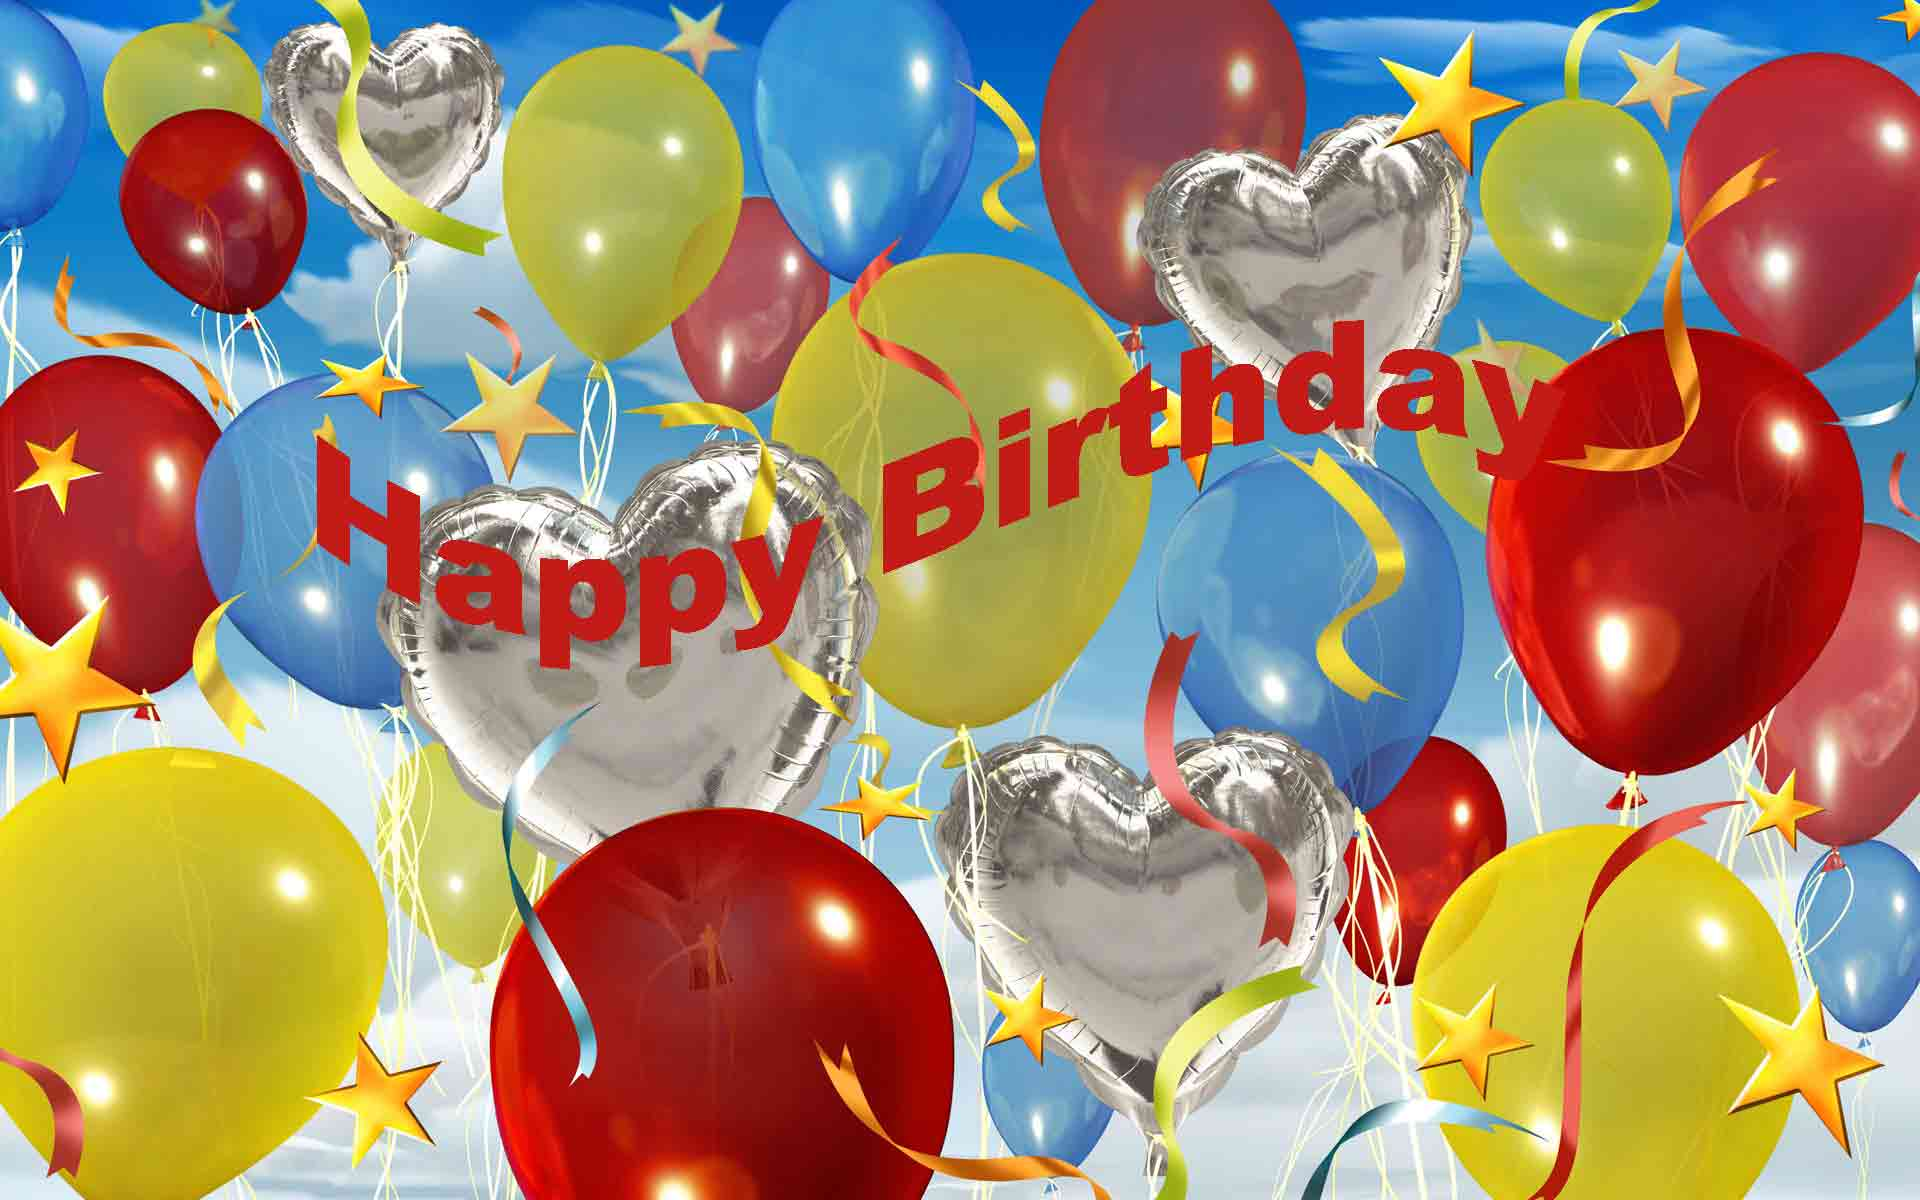 free birthday wallpaper images ; happy-birthday-wallpapers-free-download-14